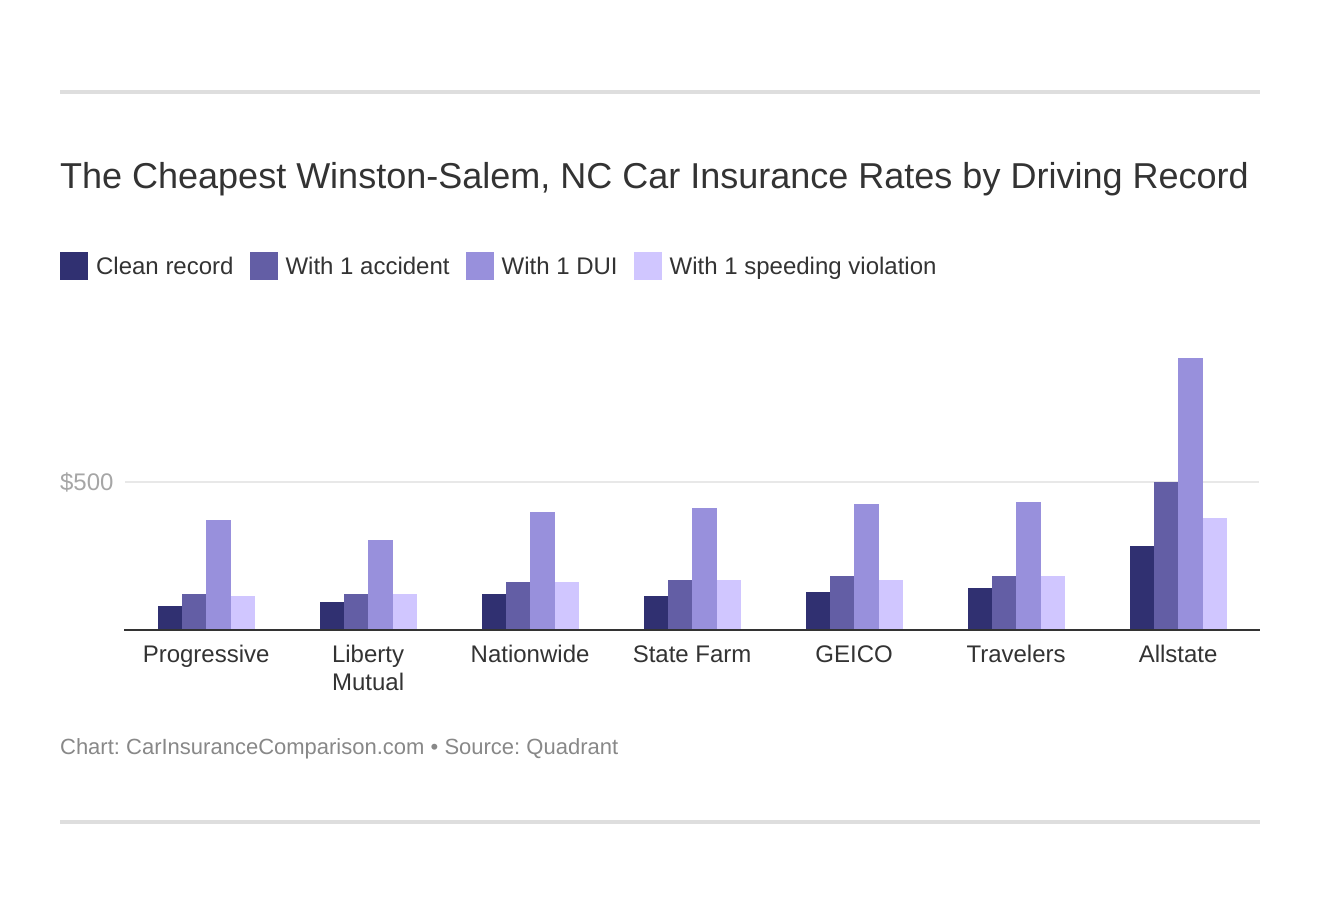 The Cheapest Winston-Salem, NC Car Insurance Rates by Driving Record